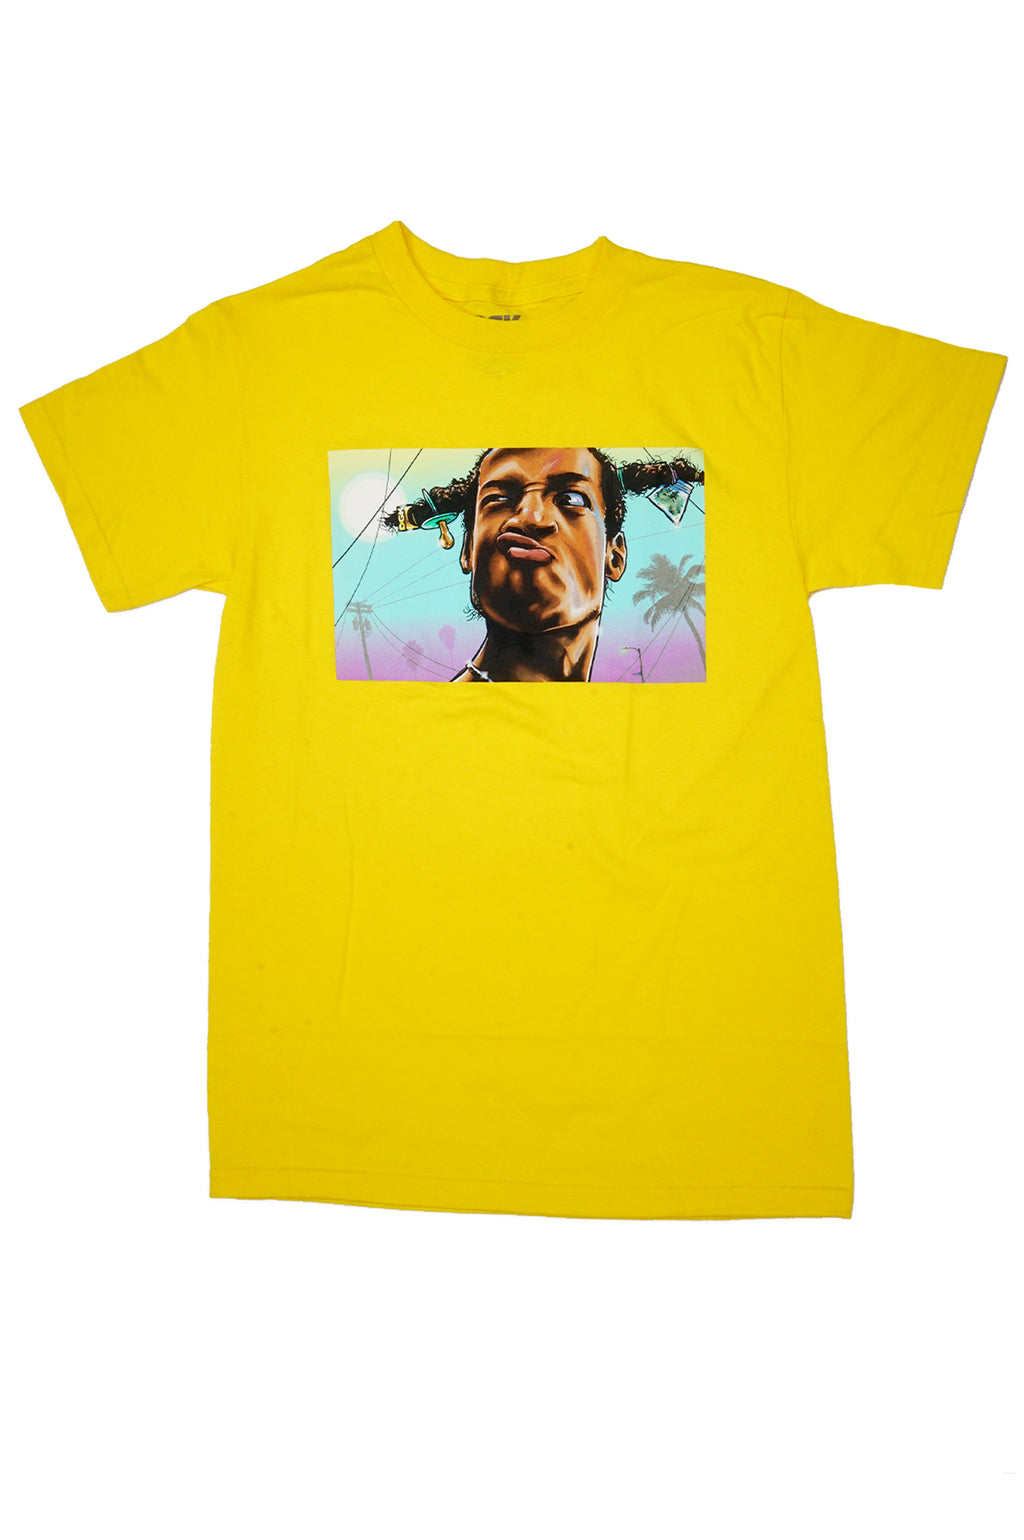 AAO FASHION MENS S/S DGK What You Say? Tee TEE